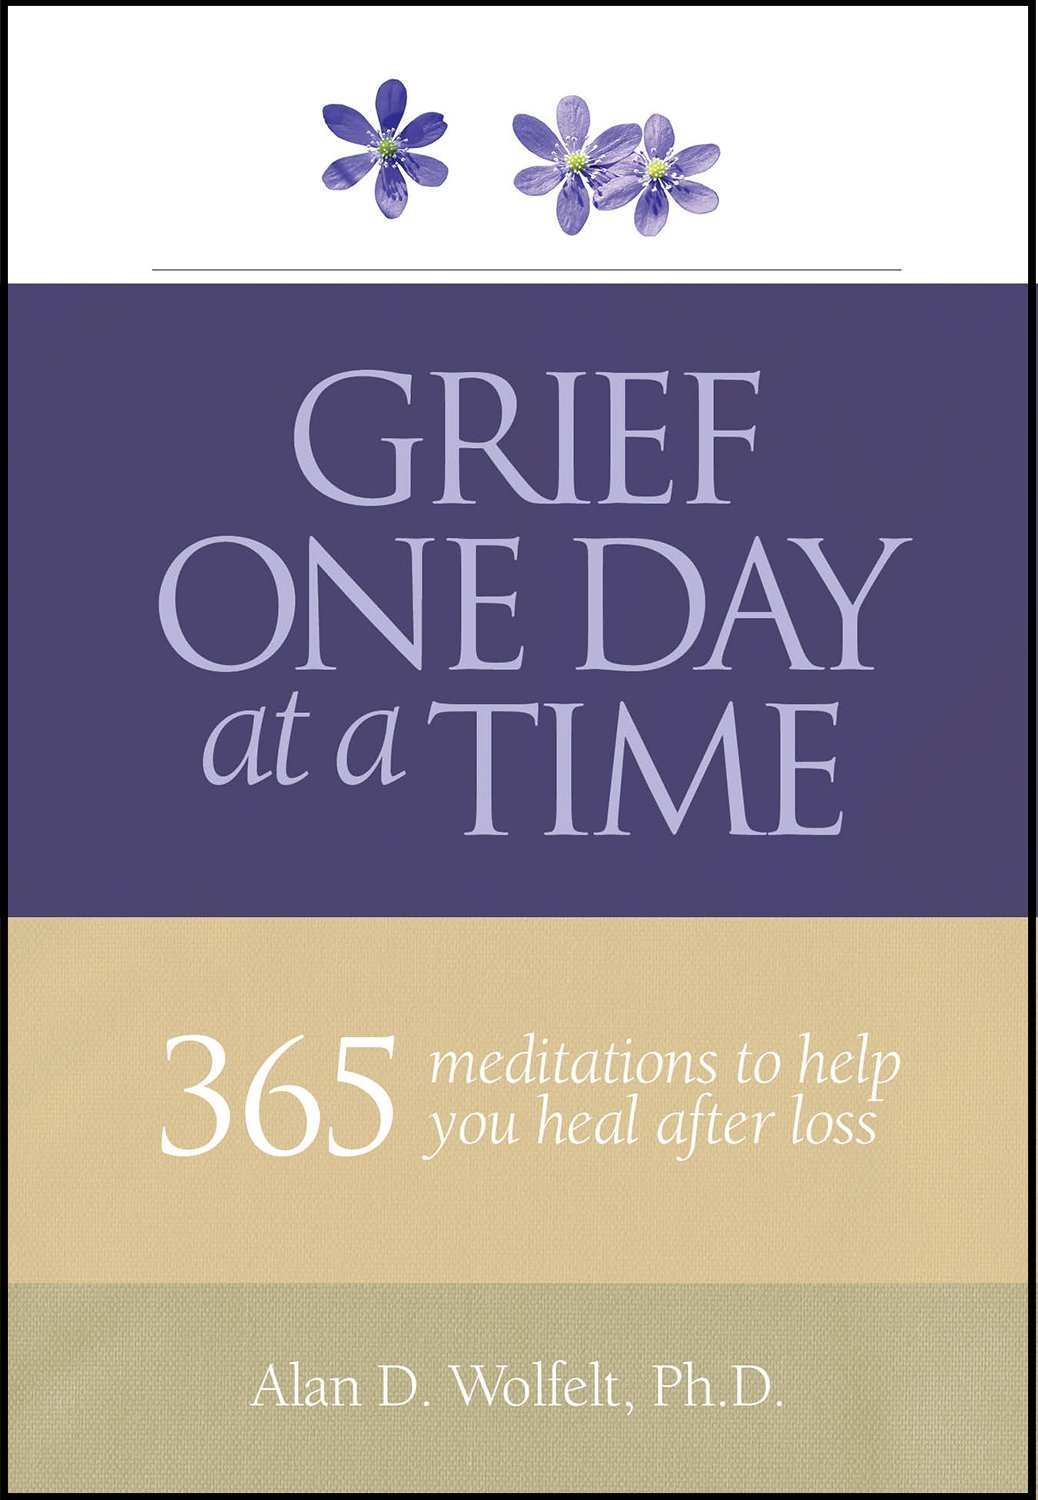 grief one day at a time 365 meditations to help you heal